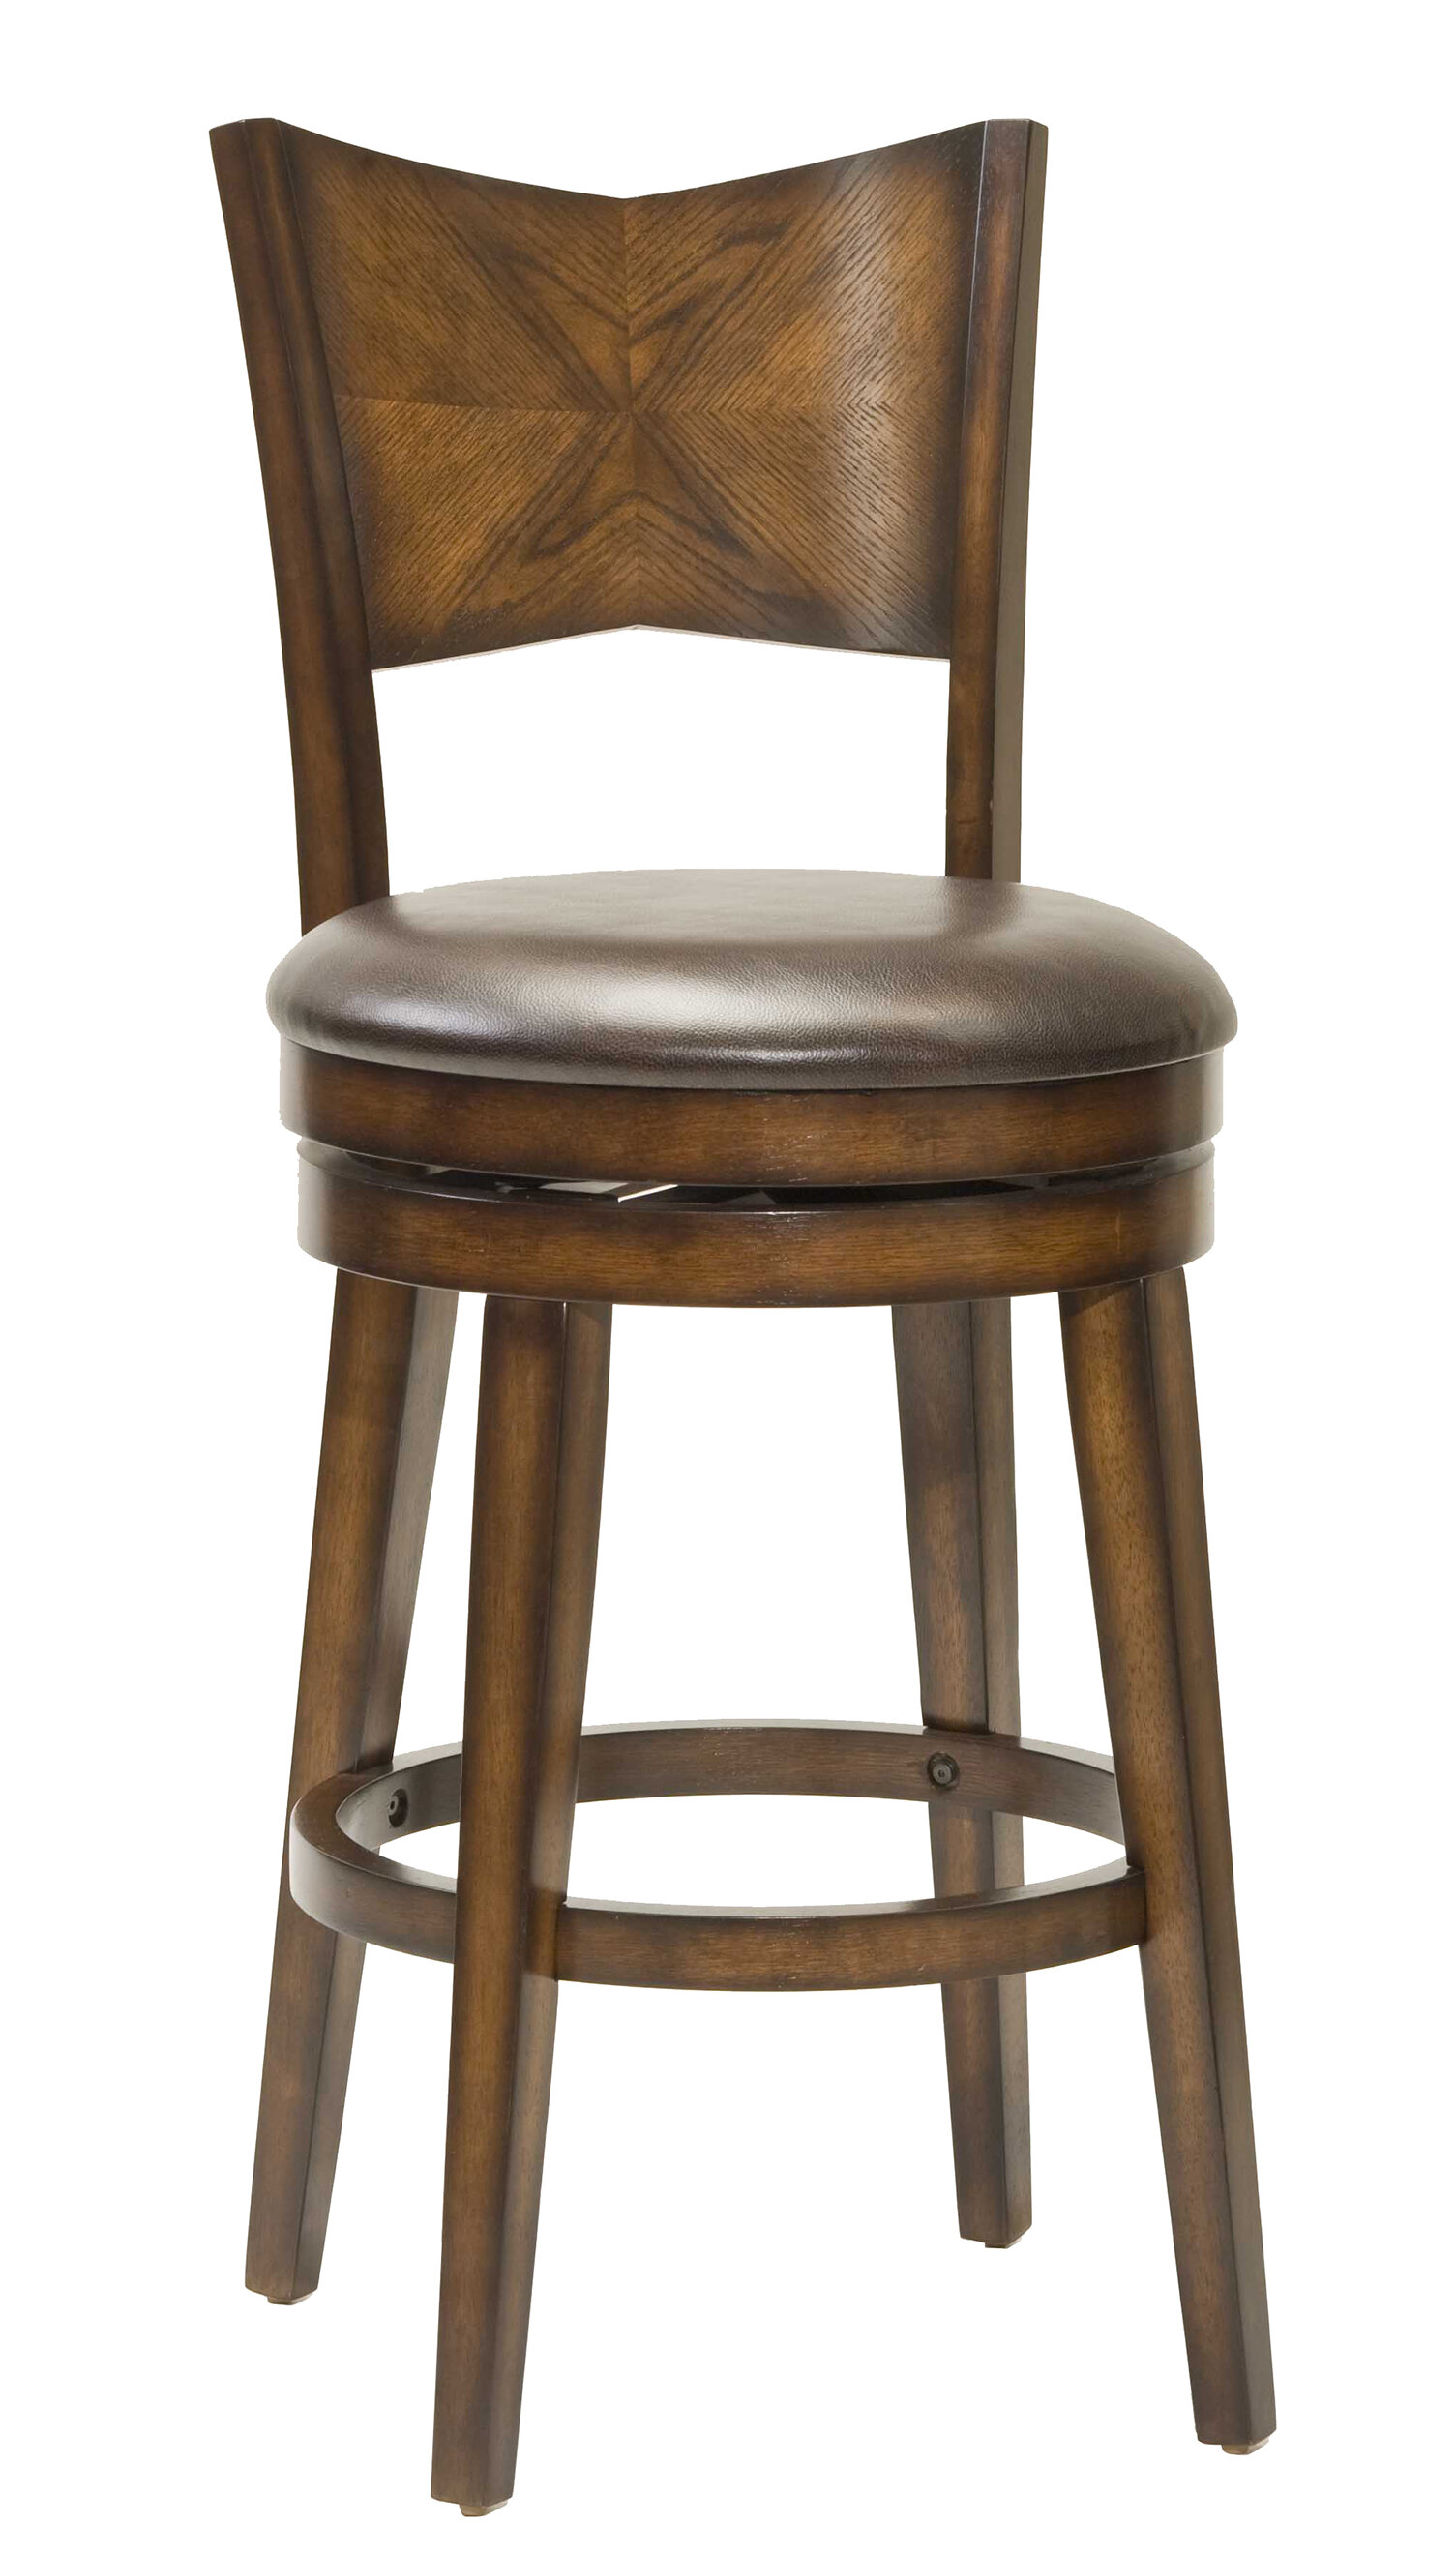 Surprising Burch Bar Counter Stool Bralicious Painted Fabric Chair Ideas Braliciousco